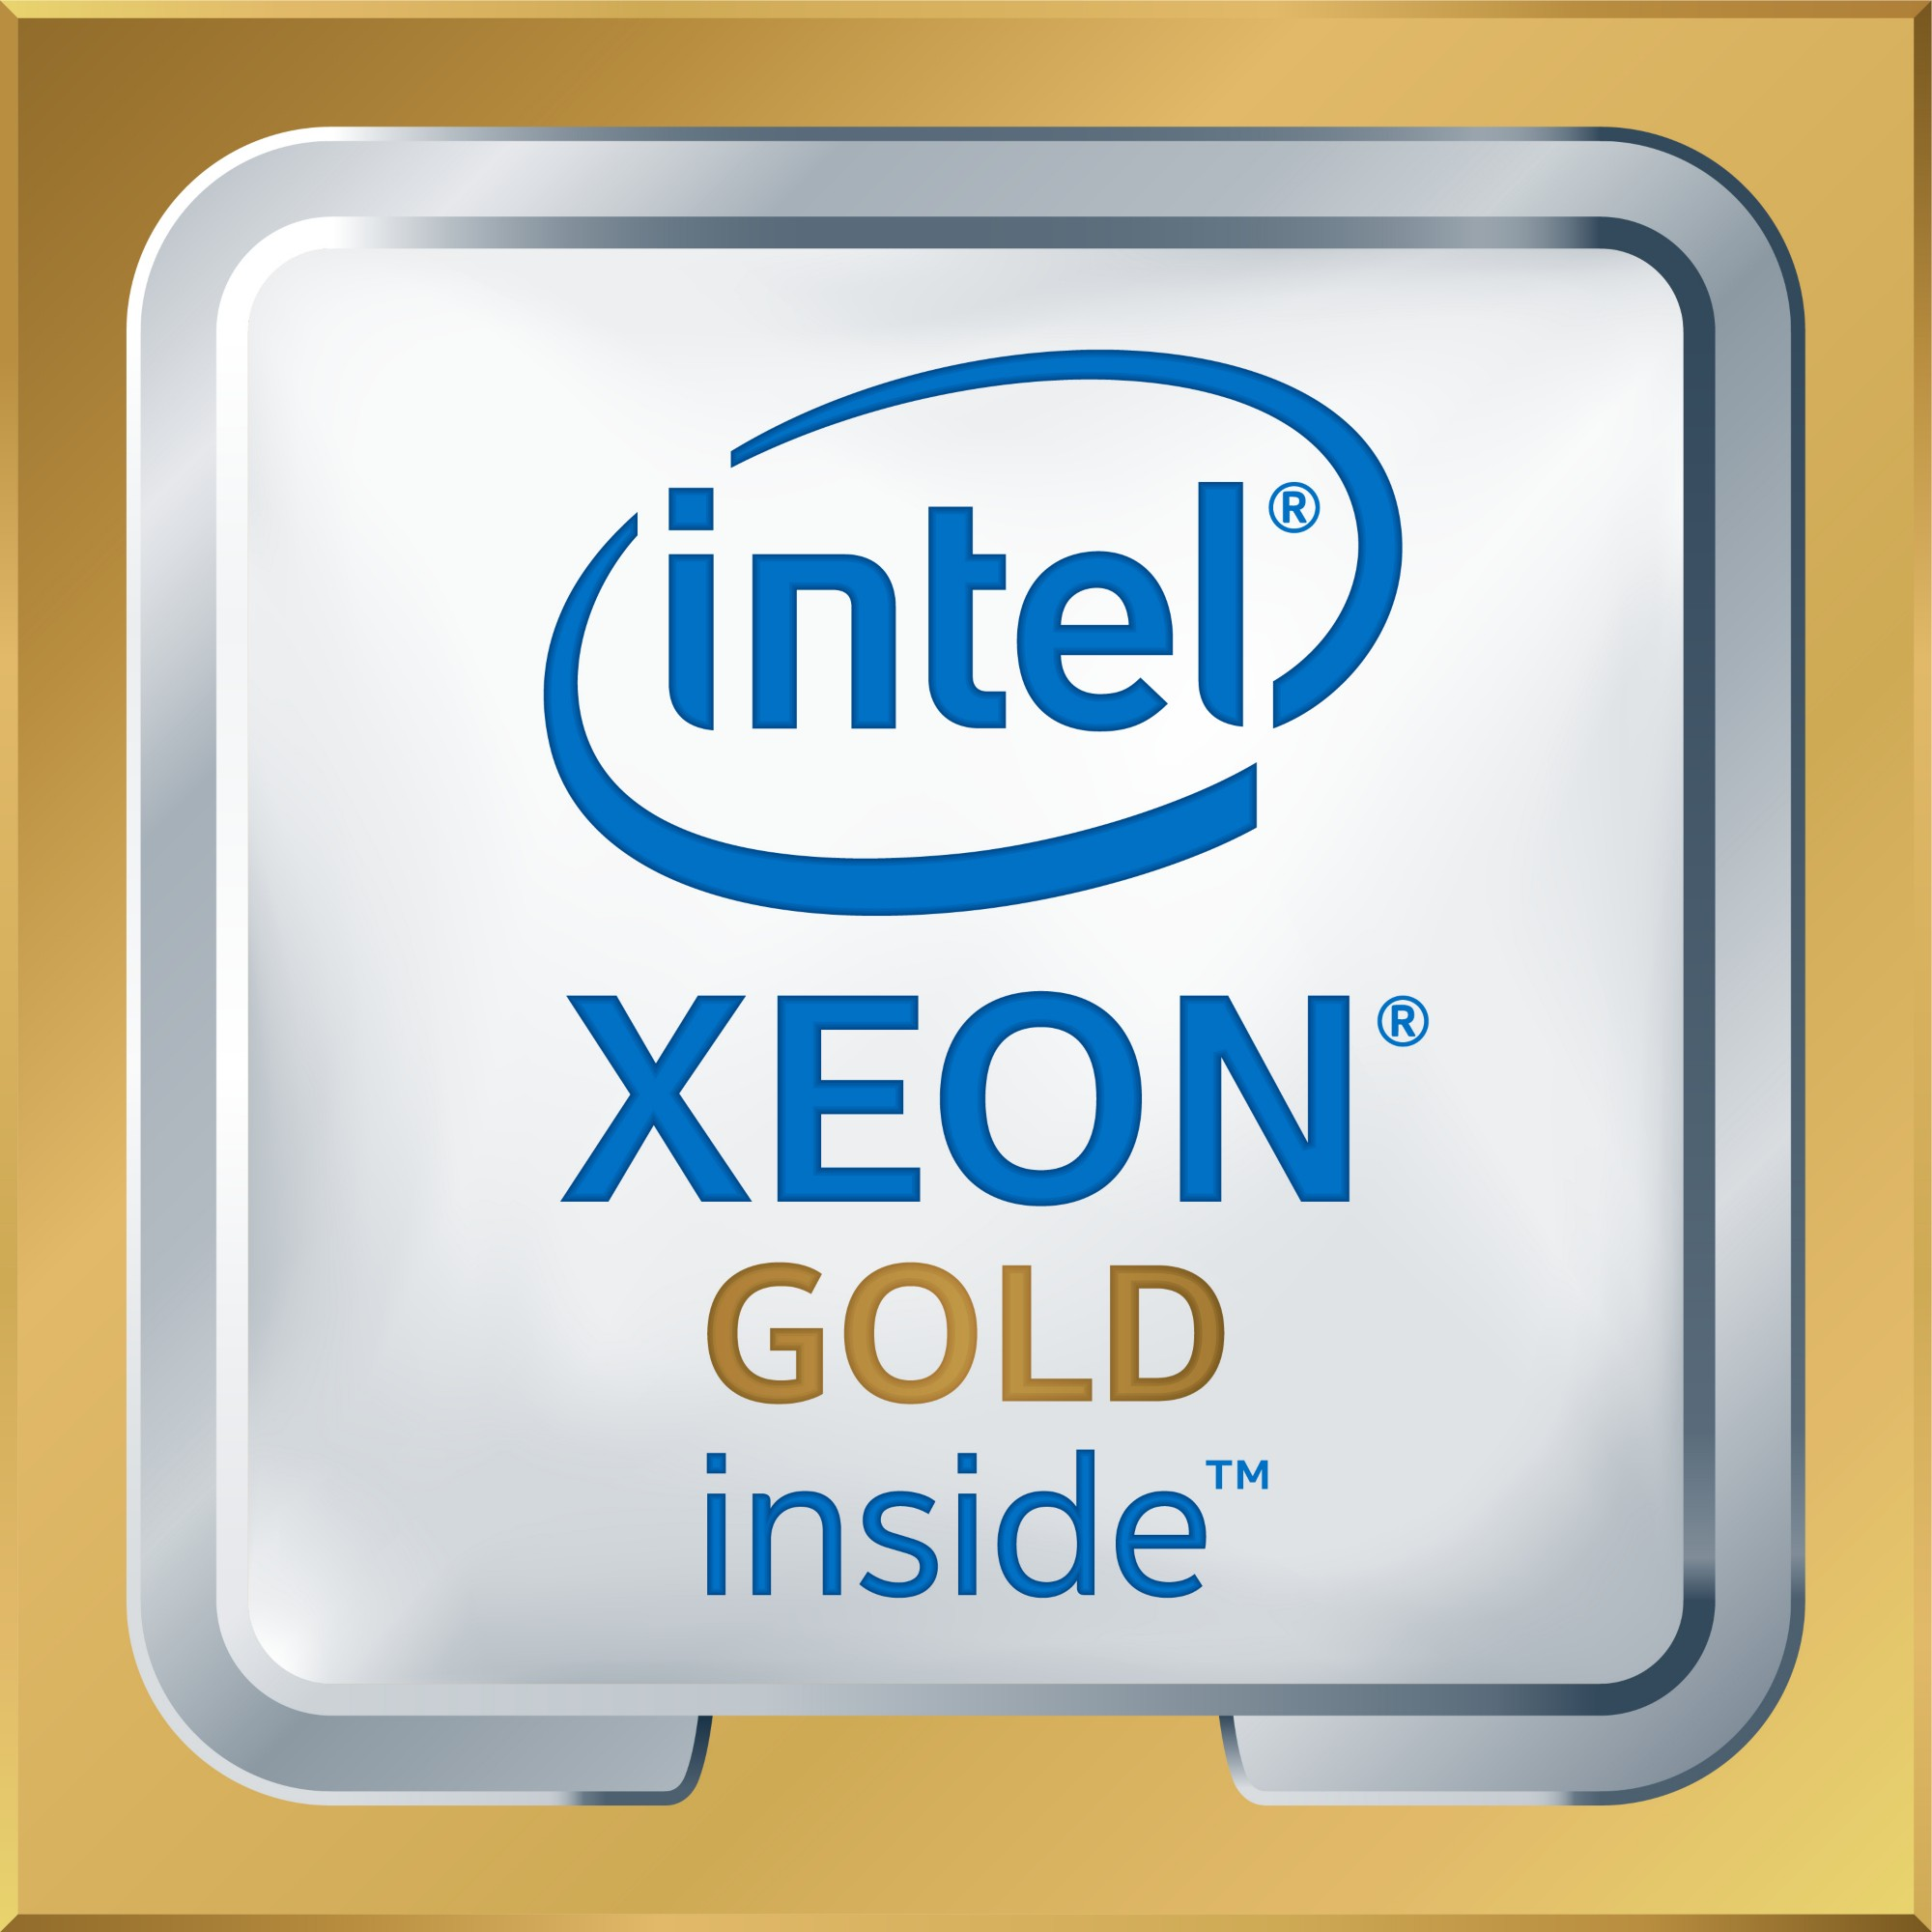 INTEL XEON GOLD 6138 PROCESSOR (27.5M CACHE, 2.00 GHZ) 2.00GHZ 27.5MB L3